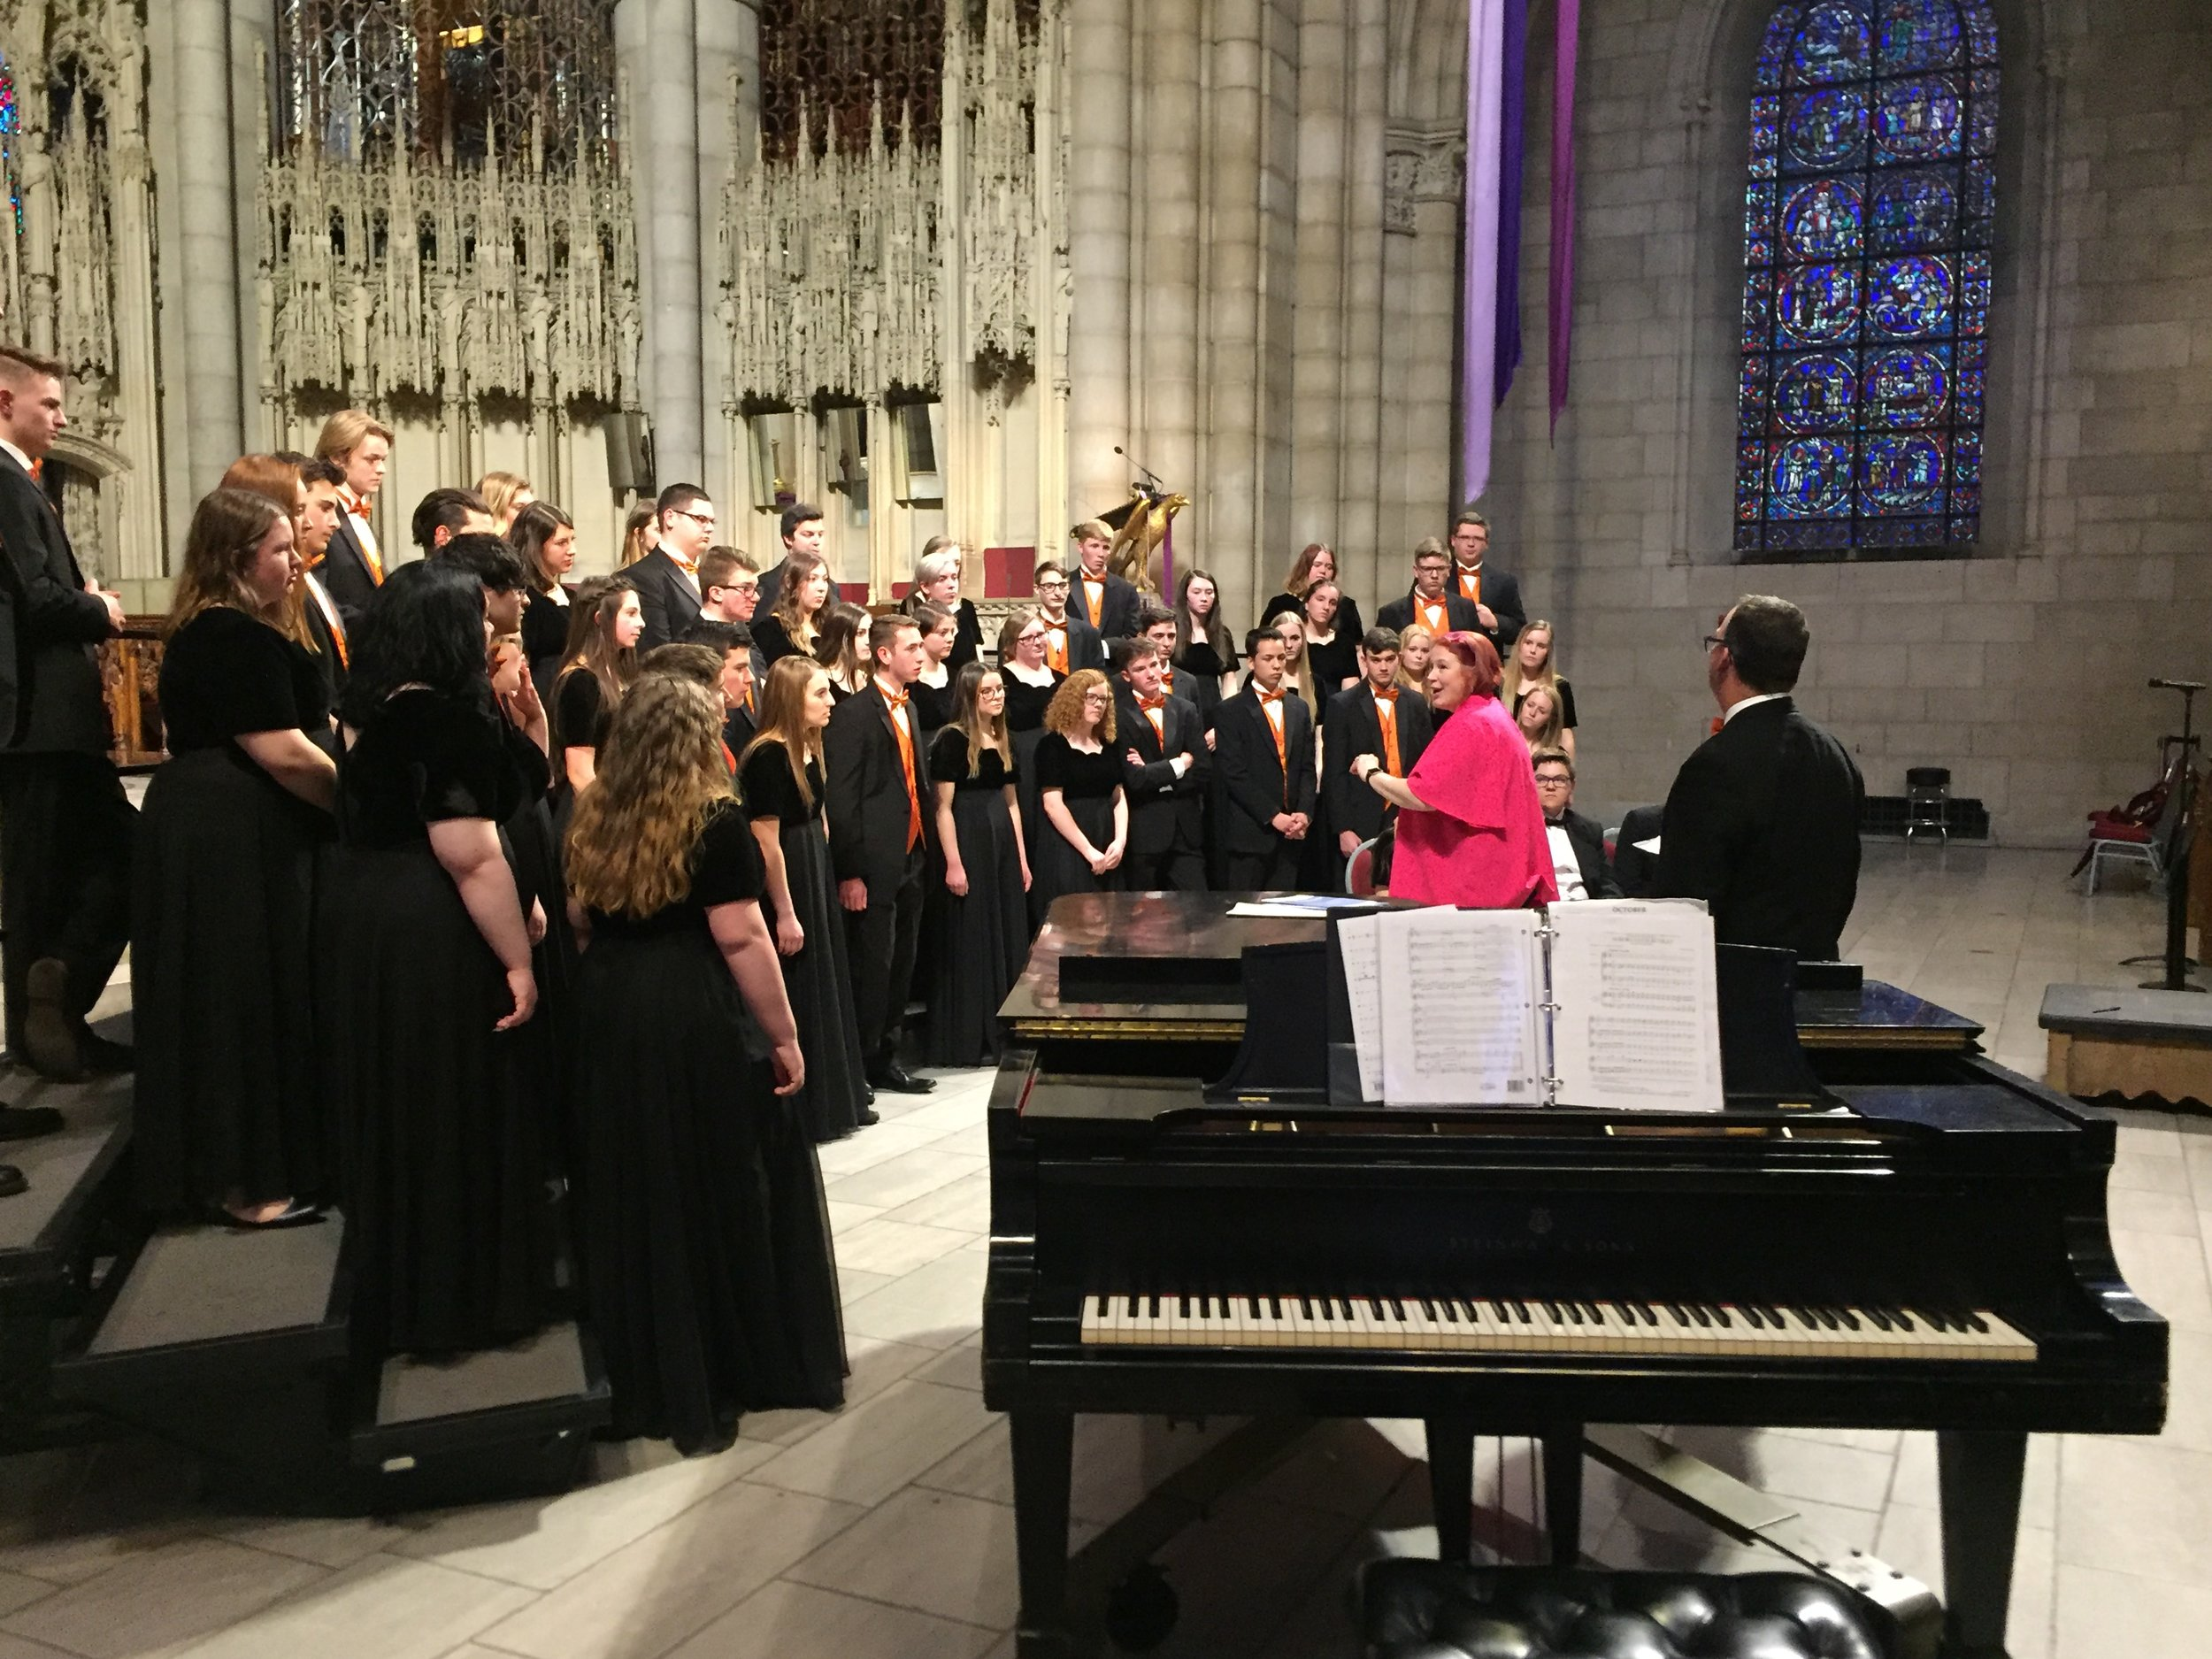 Working with a choir in New York City's famous Riverside Church